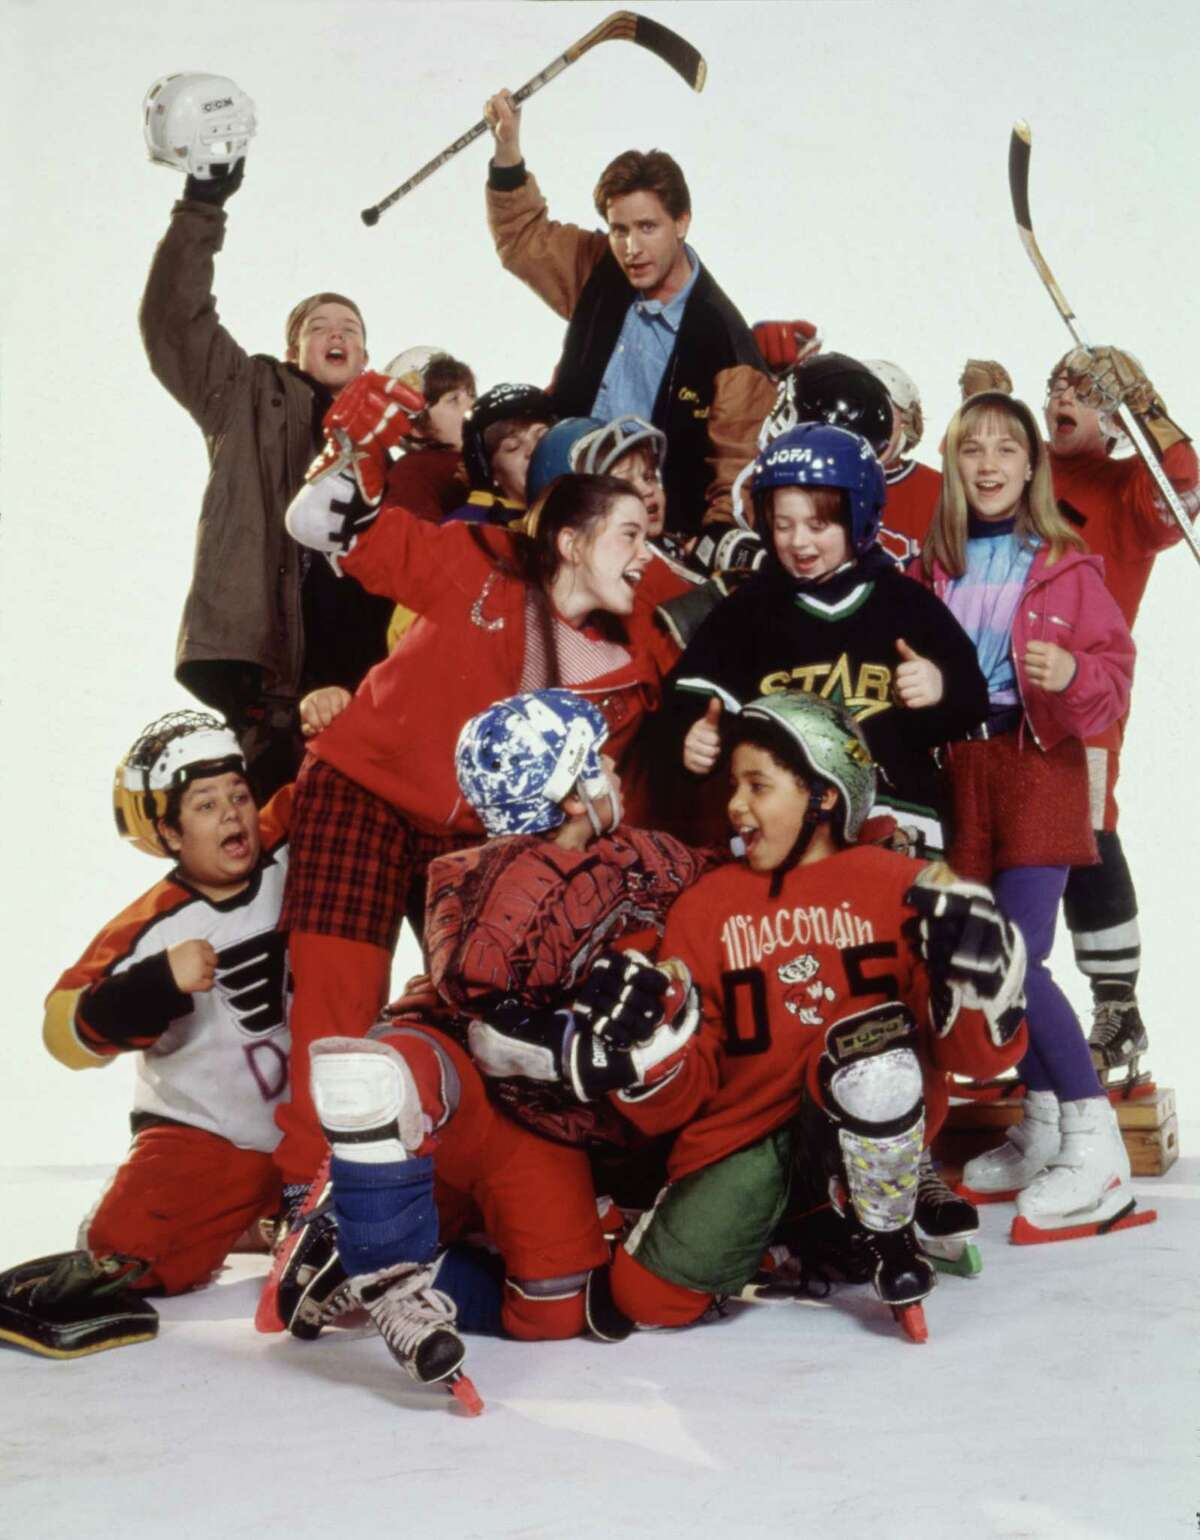 'The Mighty Ducks' (1992) was a movie before becoming an actual NHL franchise.